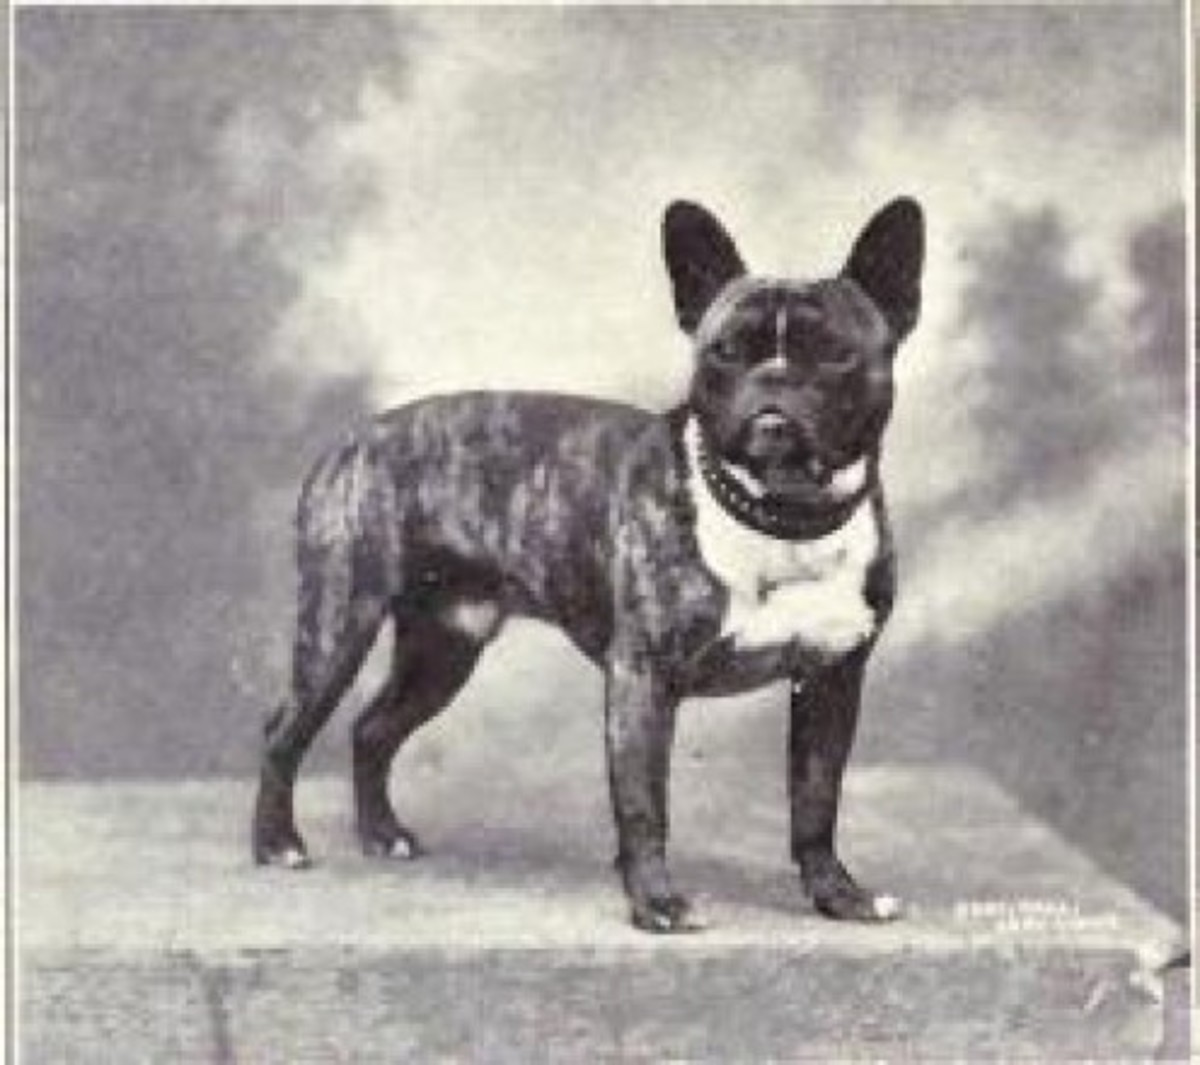 A French Bulldog in 1915.